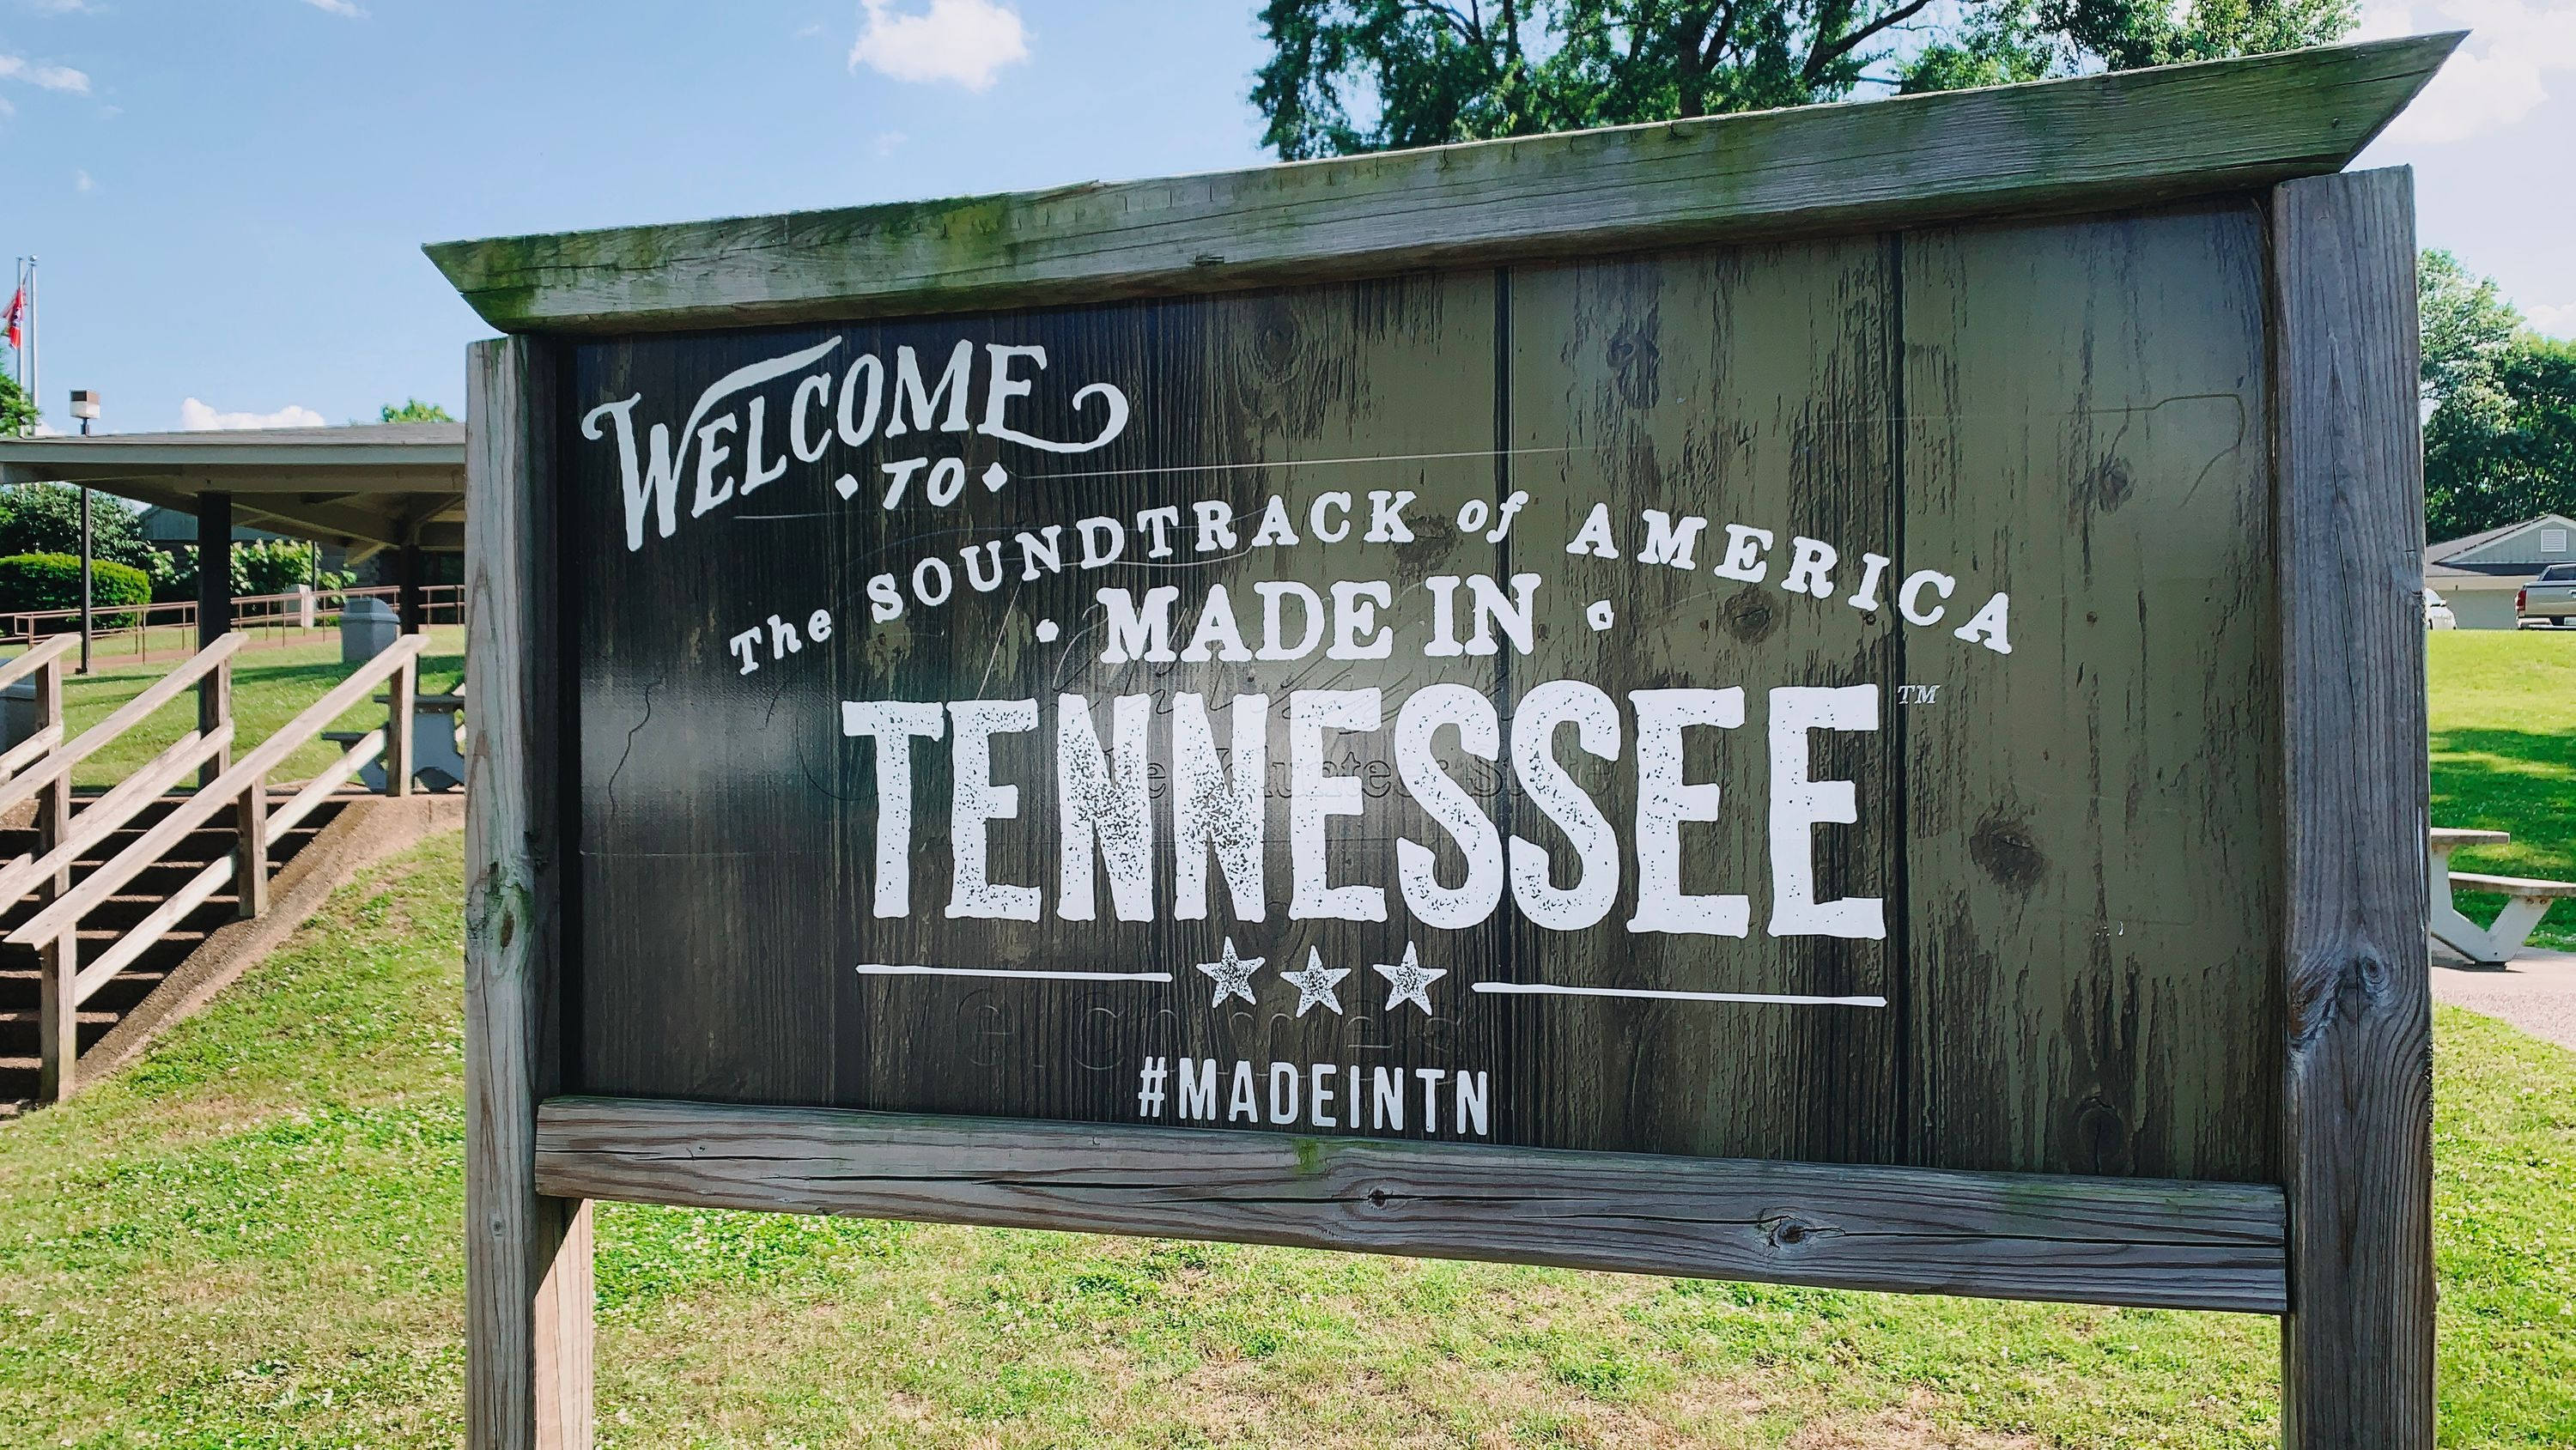 A Tennessee rest area sign advertising Tennessee as the birthplace of the Soundtrack to America